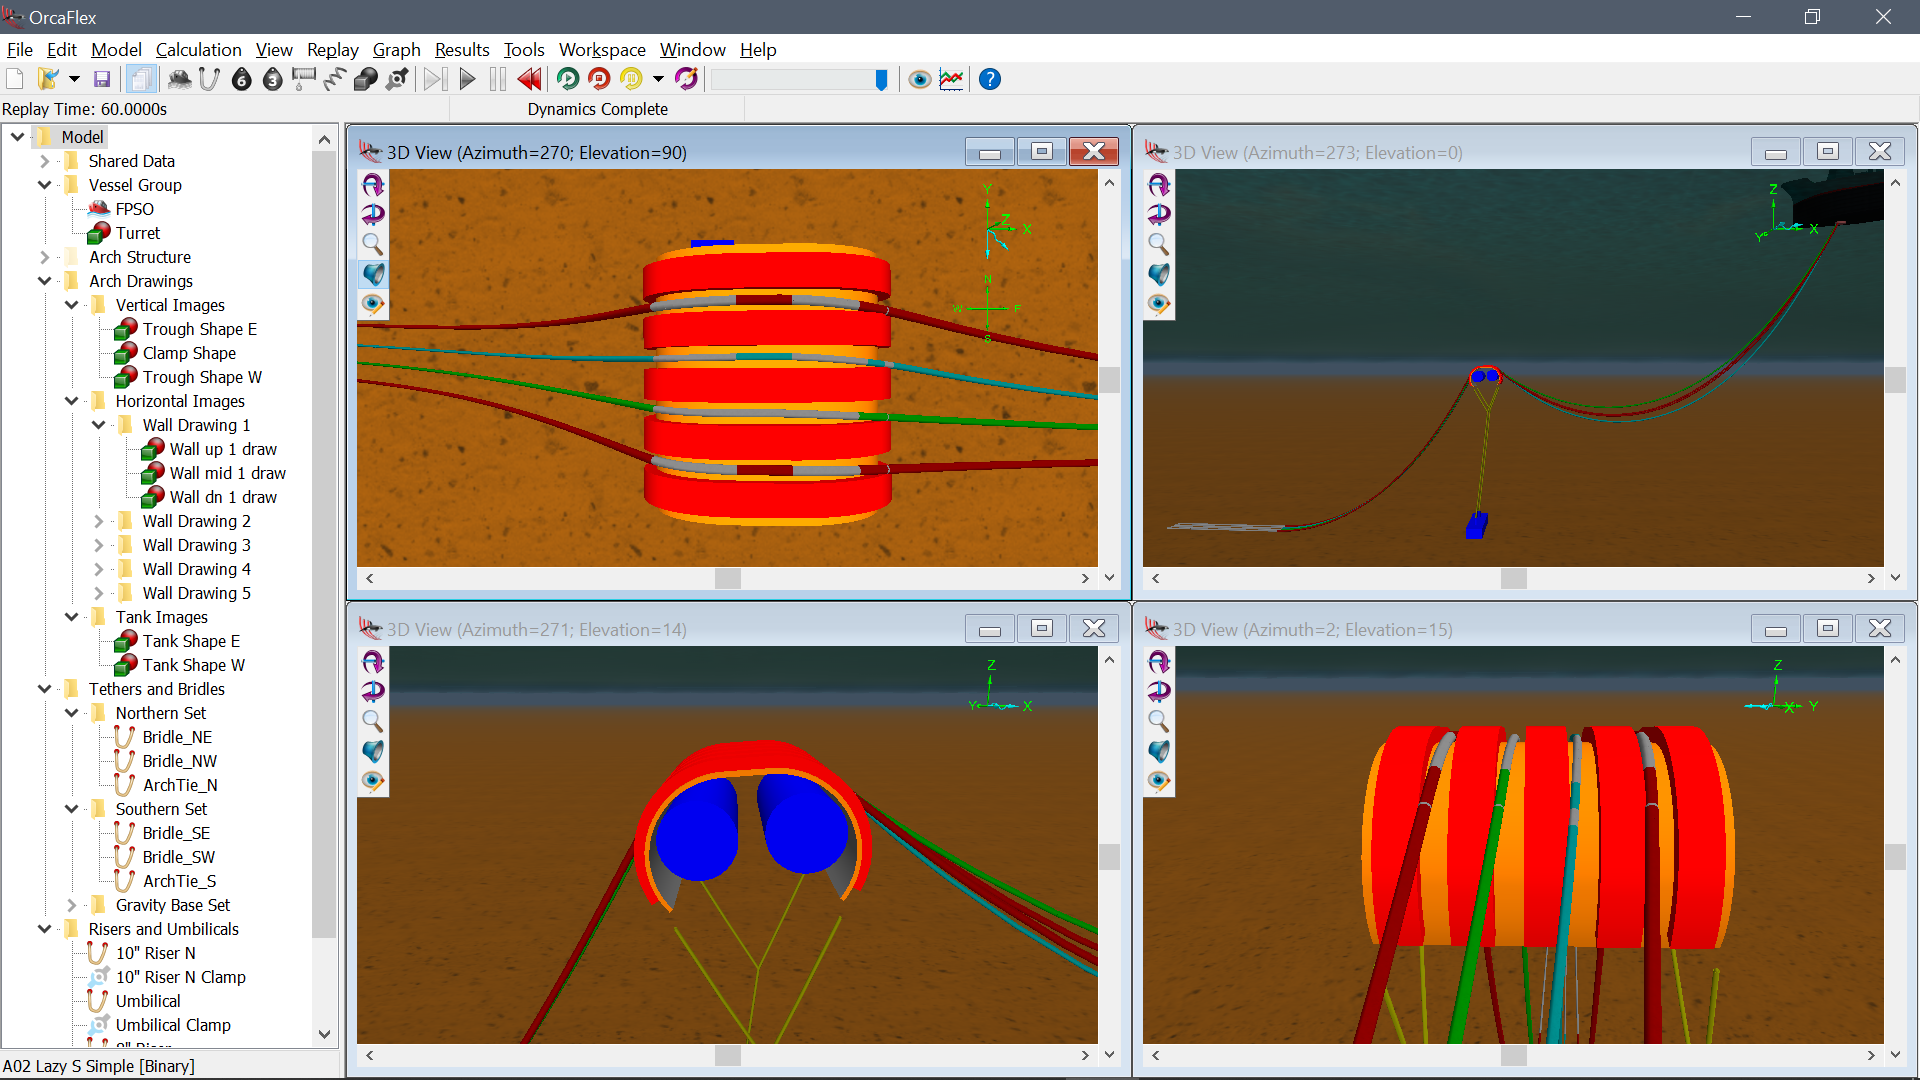 OrcaFlex - dynamic analysis software for offshore marine systems